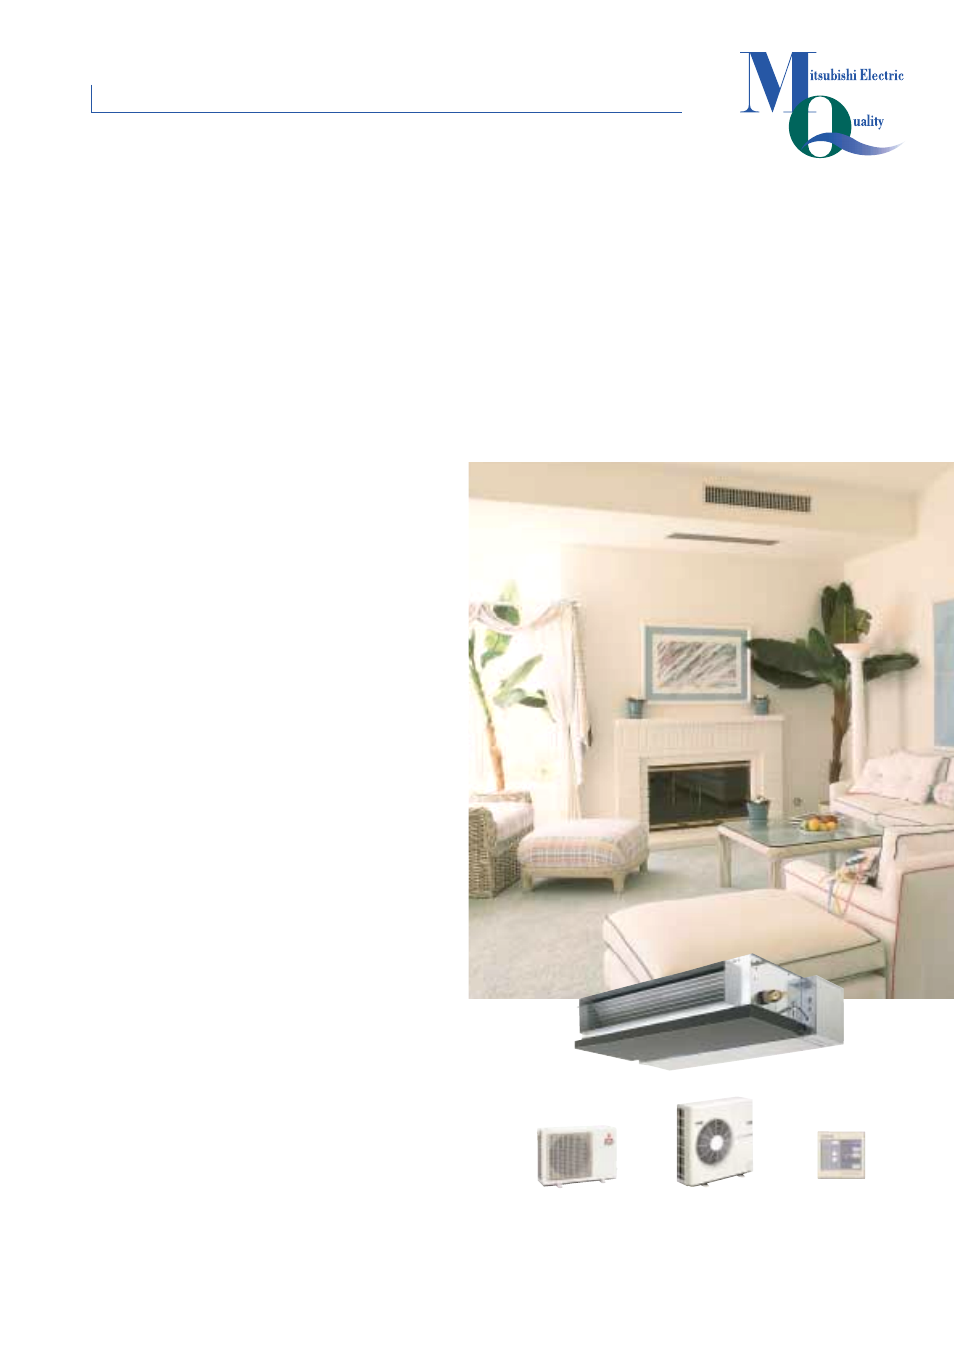 Seh series ceiling-concealed, The perfect single or multi room system for you | MITSUBISHI ...